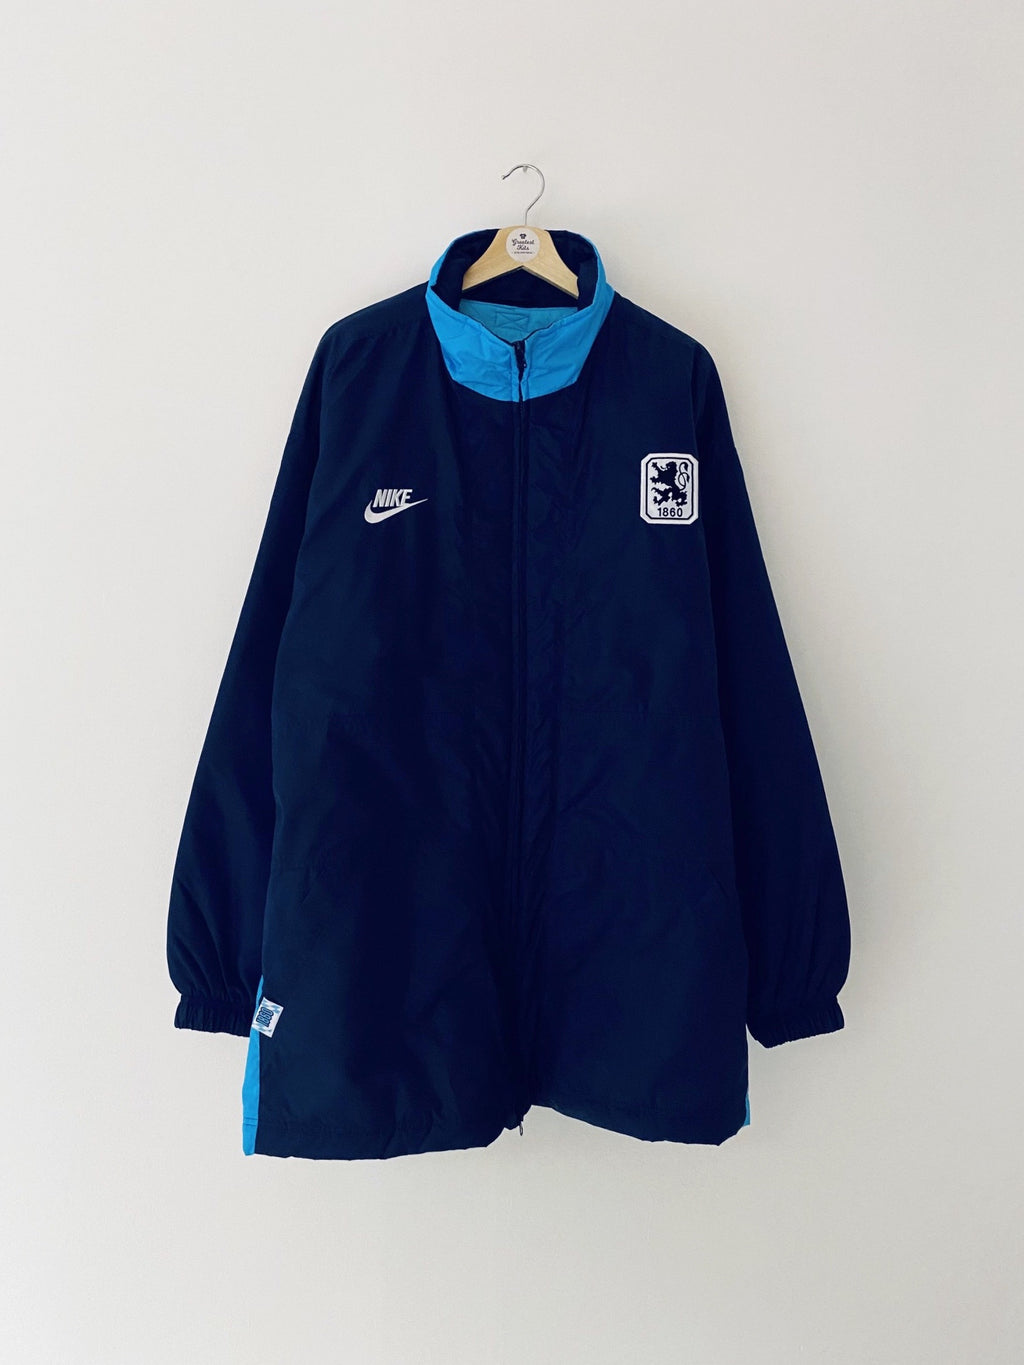 1995/96 1860 Munich Bench Coat (XXL) 10/10